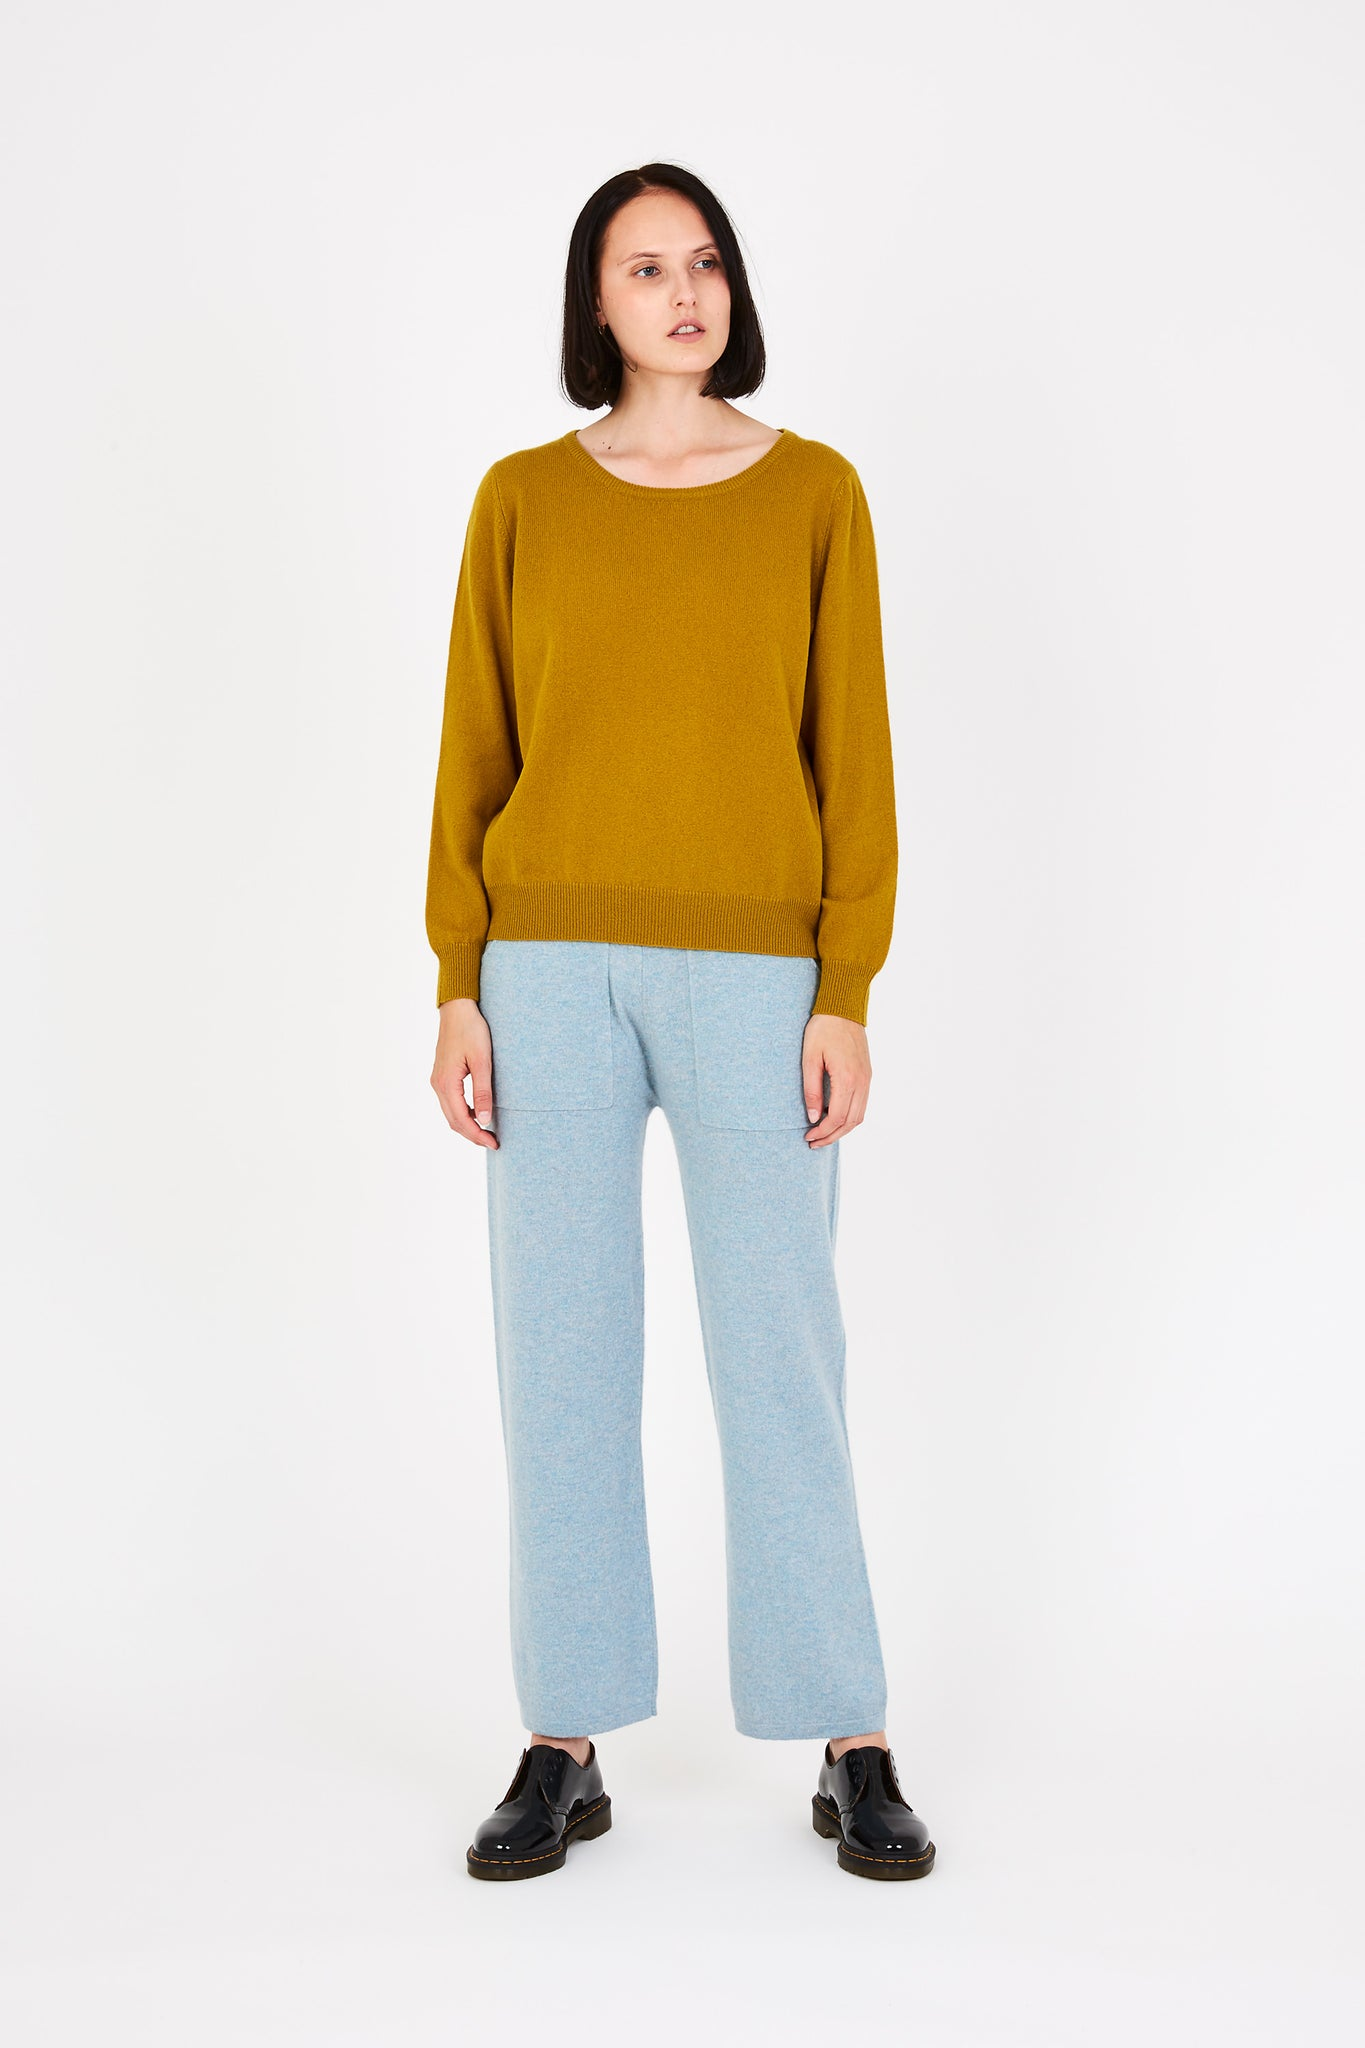 Laine cashmere sweater in mustard yellow